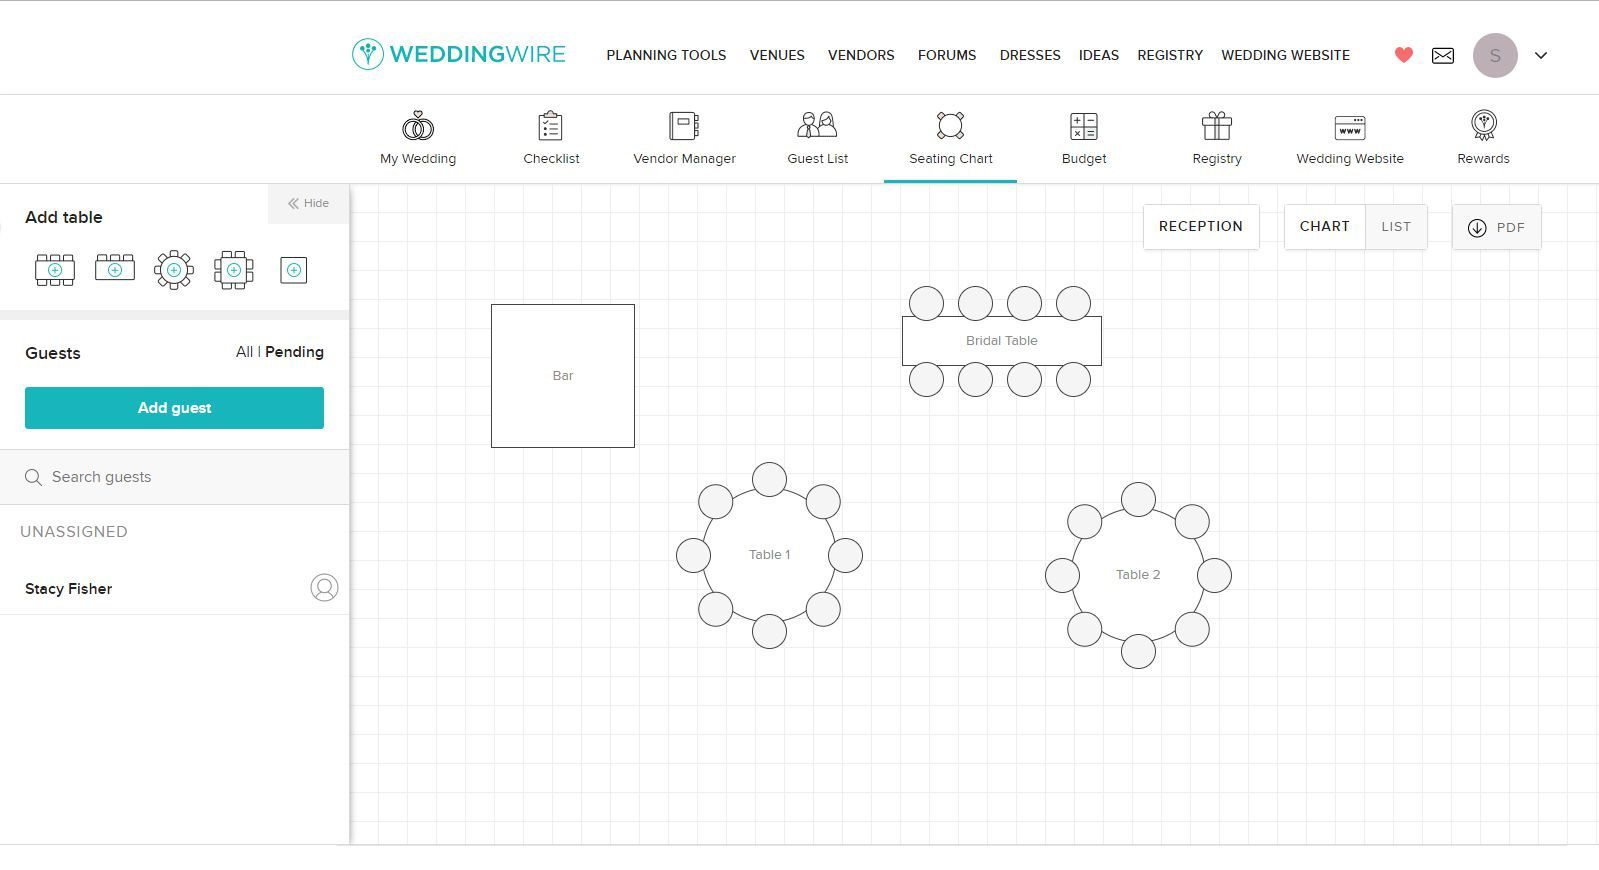 010 Impressive Seating Chart Template Excel High Resolution  Wedding Plan Free Table MicrosoftFull